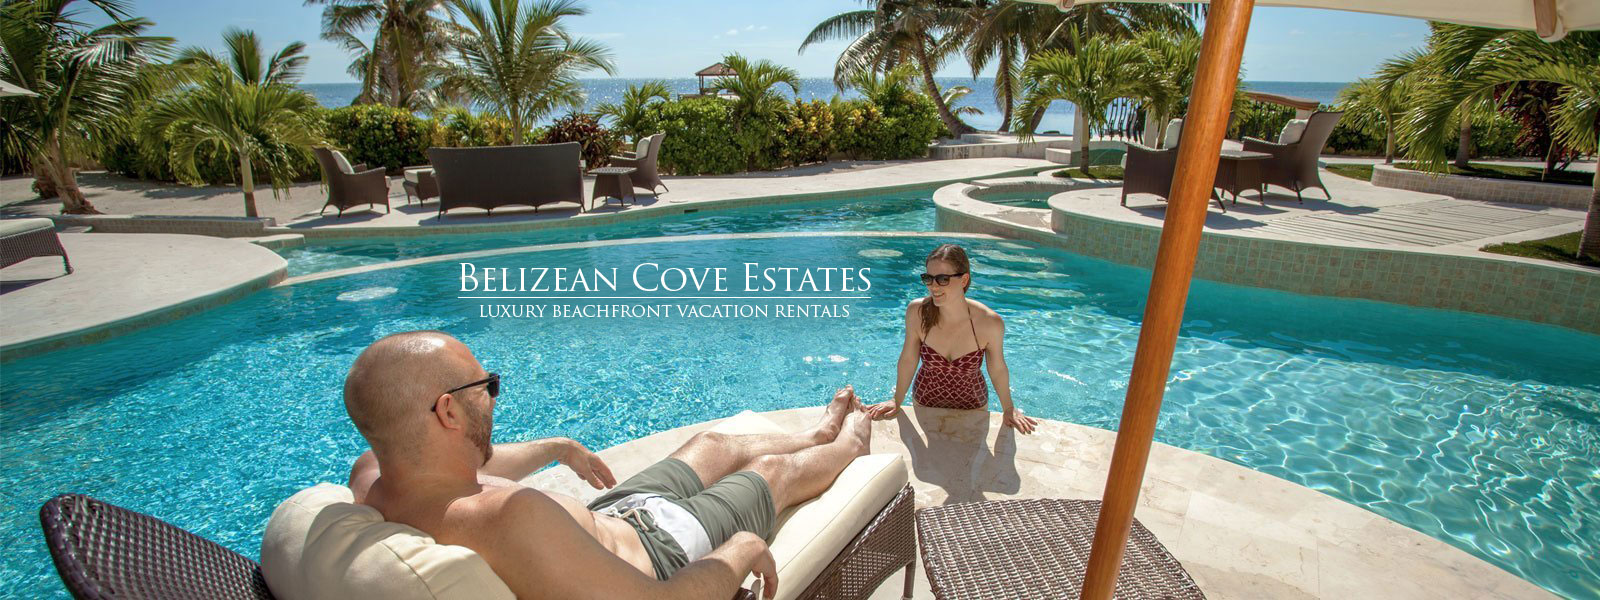 Luxurious Pools at Belizean Cove Estates in Belize